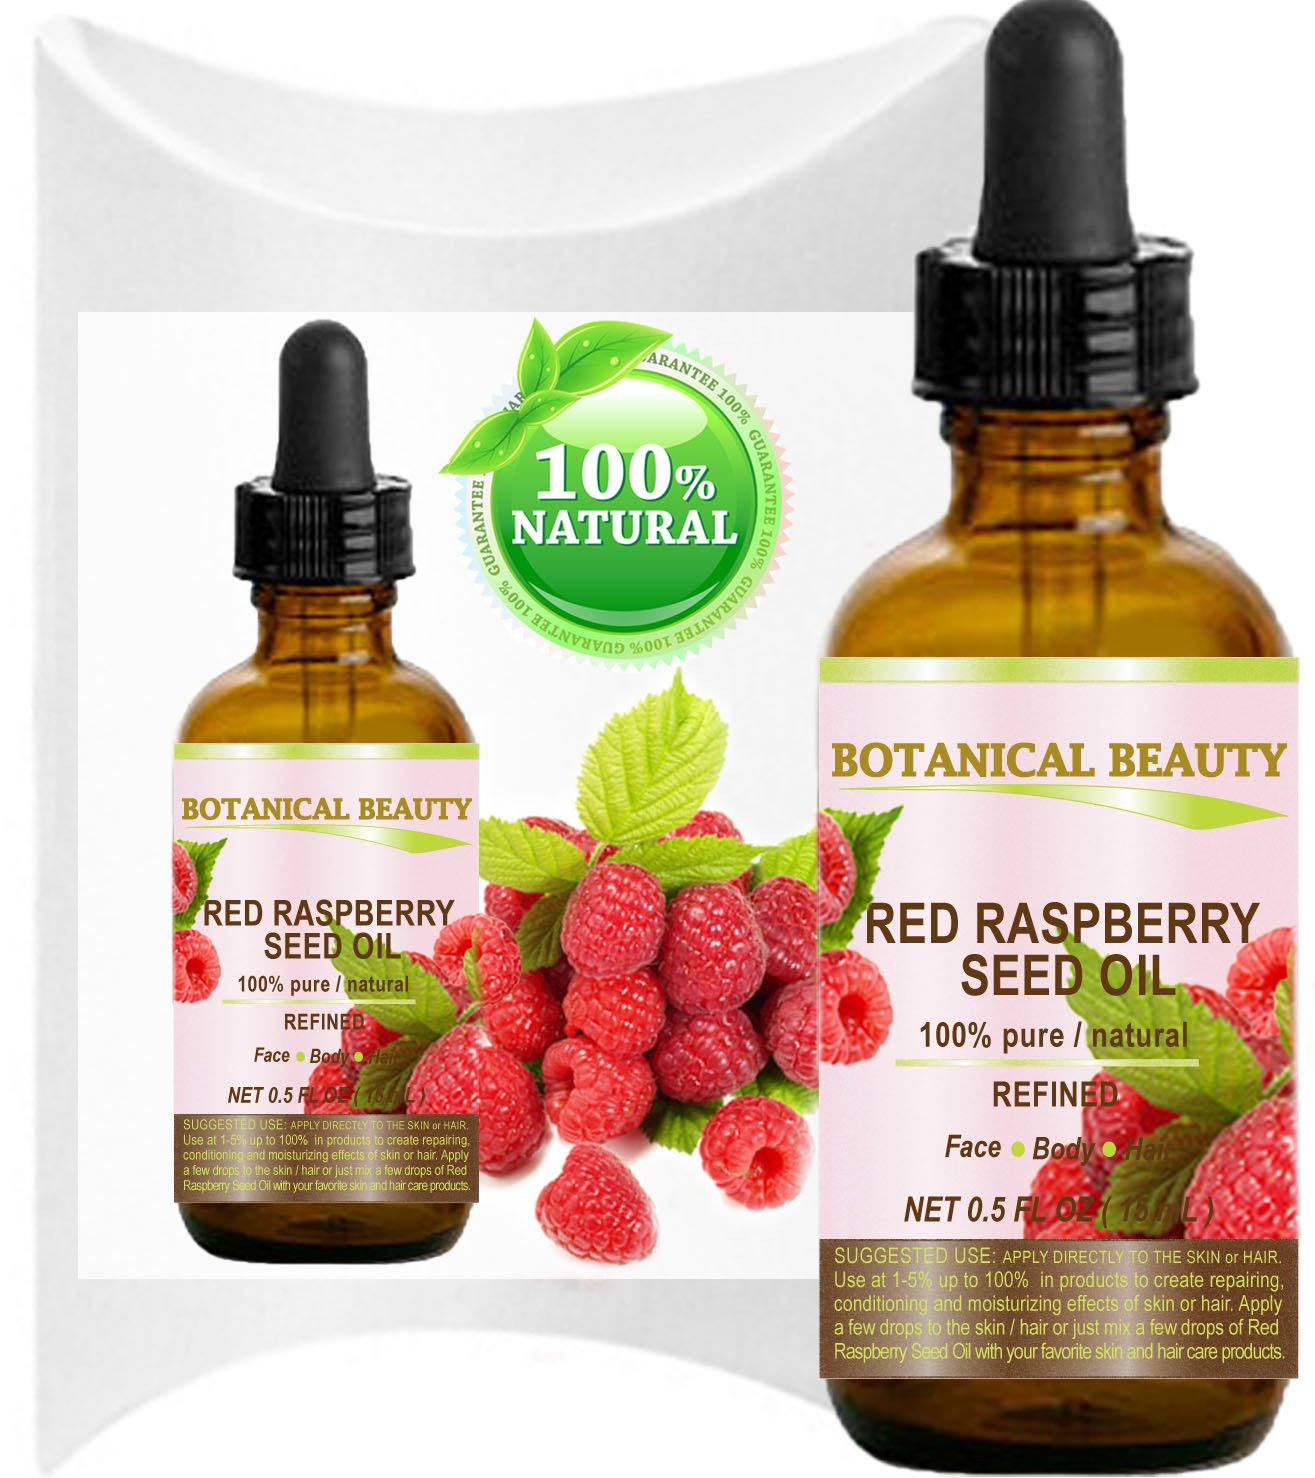 "RED RASPBERRY SEED OIL. 100% Pure / Natural / Undiluted / Refined Cold Pressed Carrier Oil. 0.5 Fl.oz.-15 ml. For Skin, Hair, Lip and Nail Care. ""One of the highest anti-oxidant, rich in vitamin A and E, Omega 3, 6 and 9 Essential Fatty Acids""."